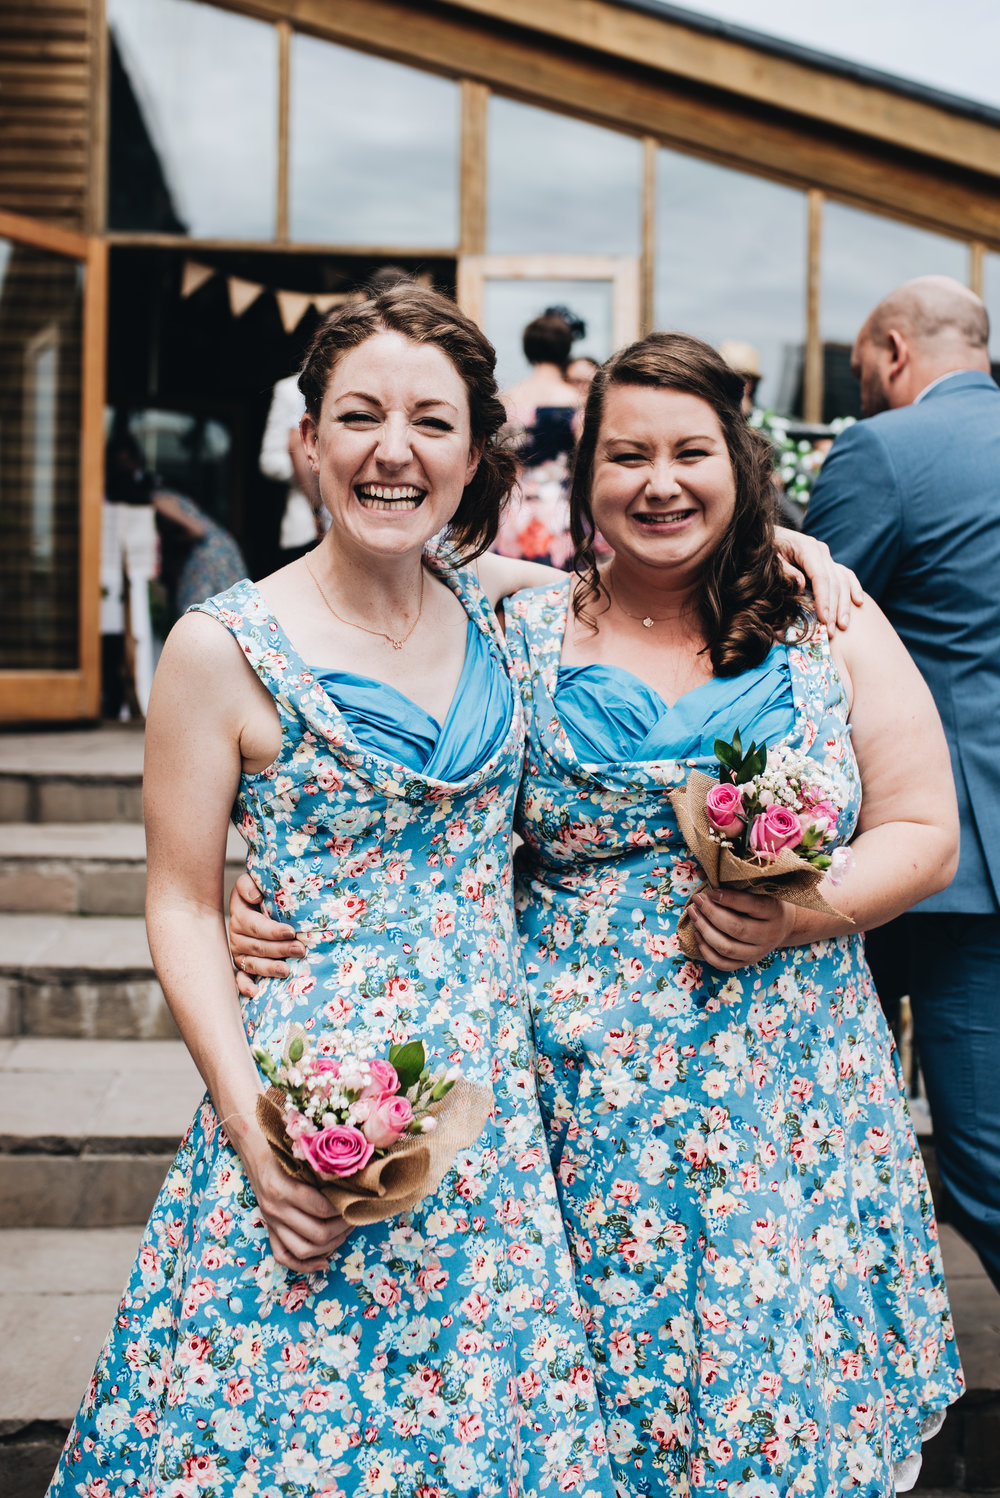 Wedding Photography | South Wales | Our Beautiful Adventure